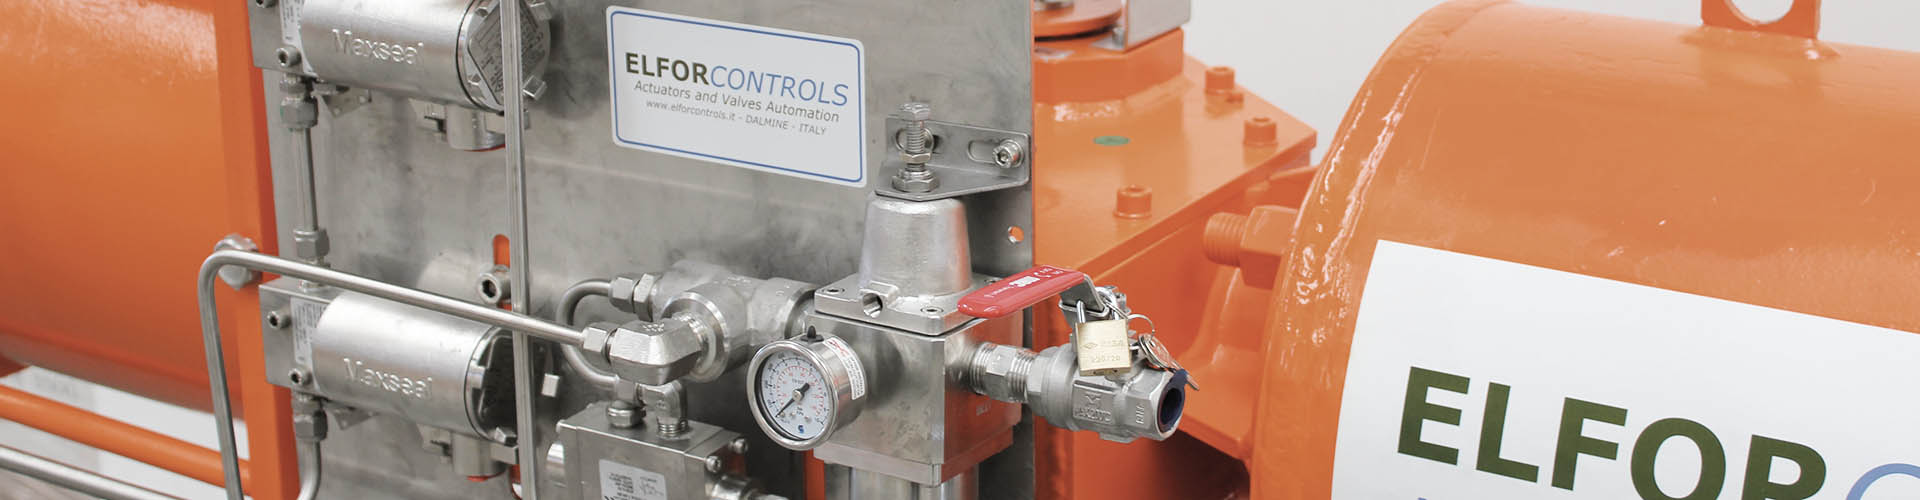 Control System - Control System & Remote Controller